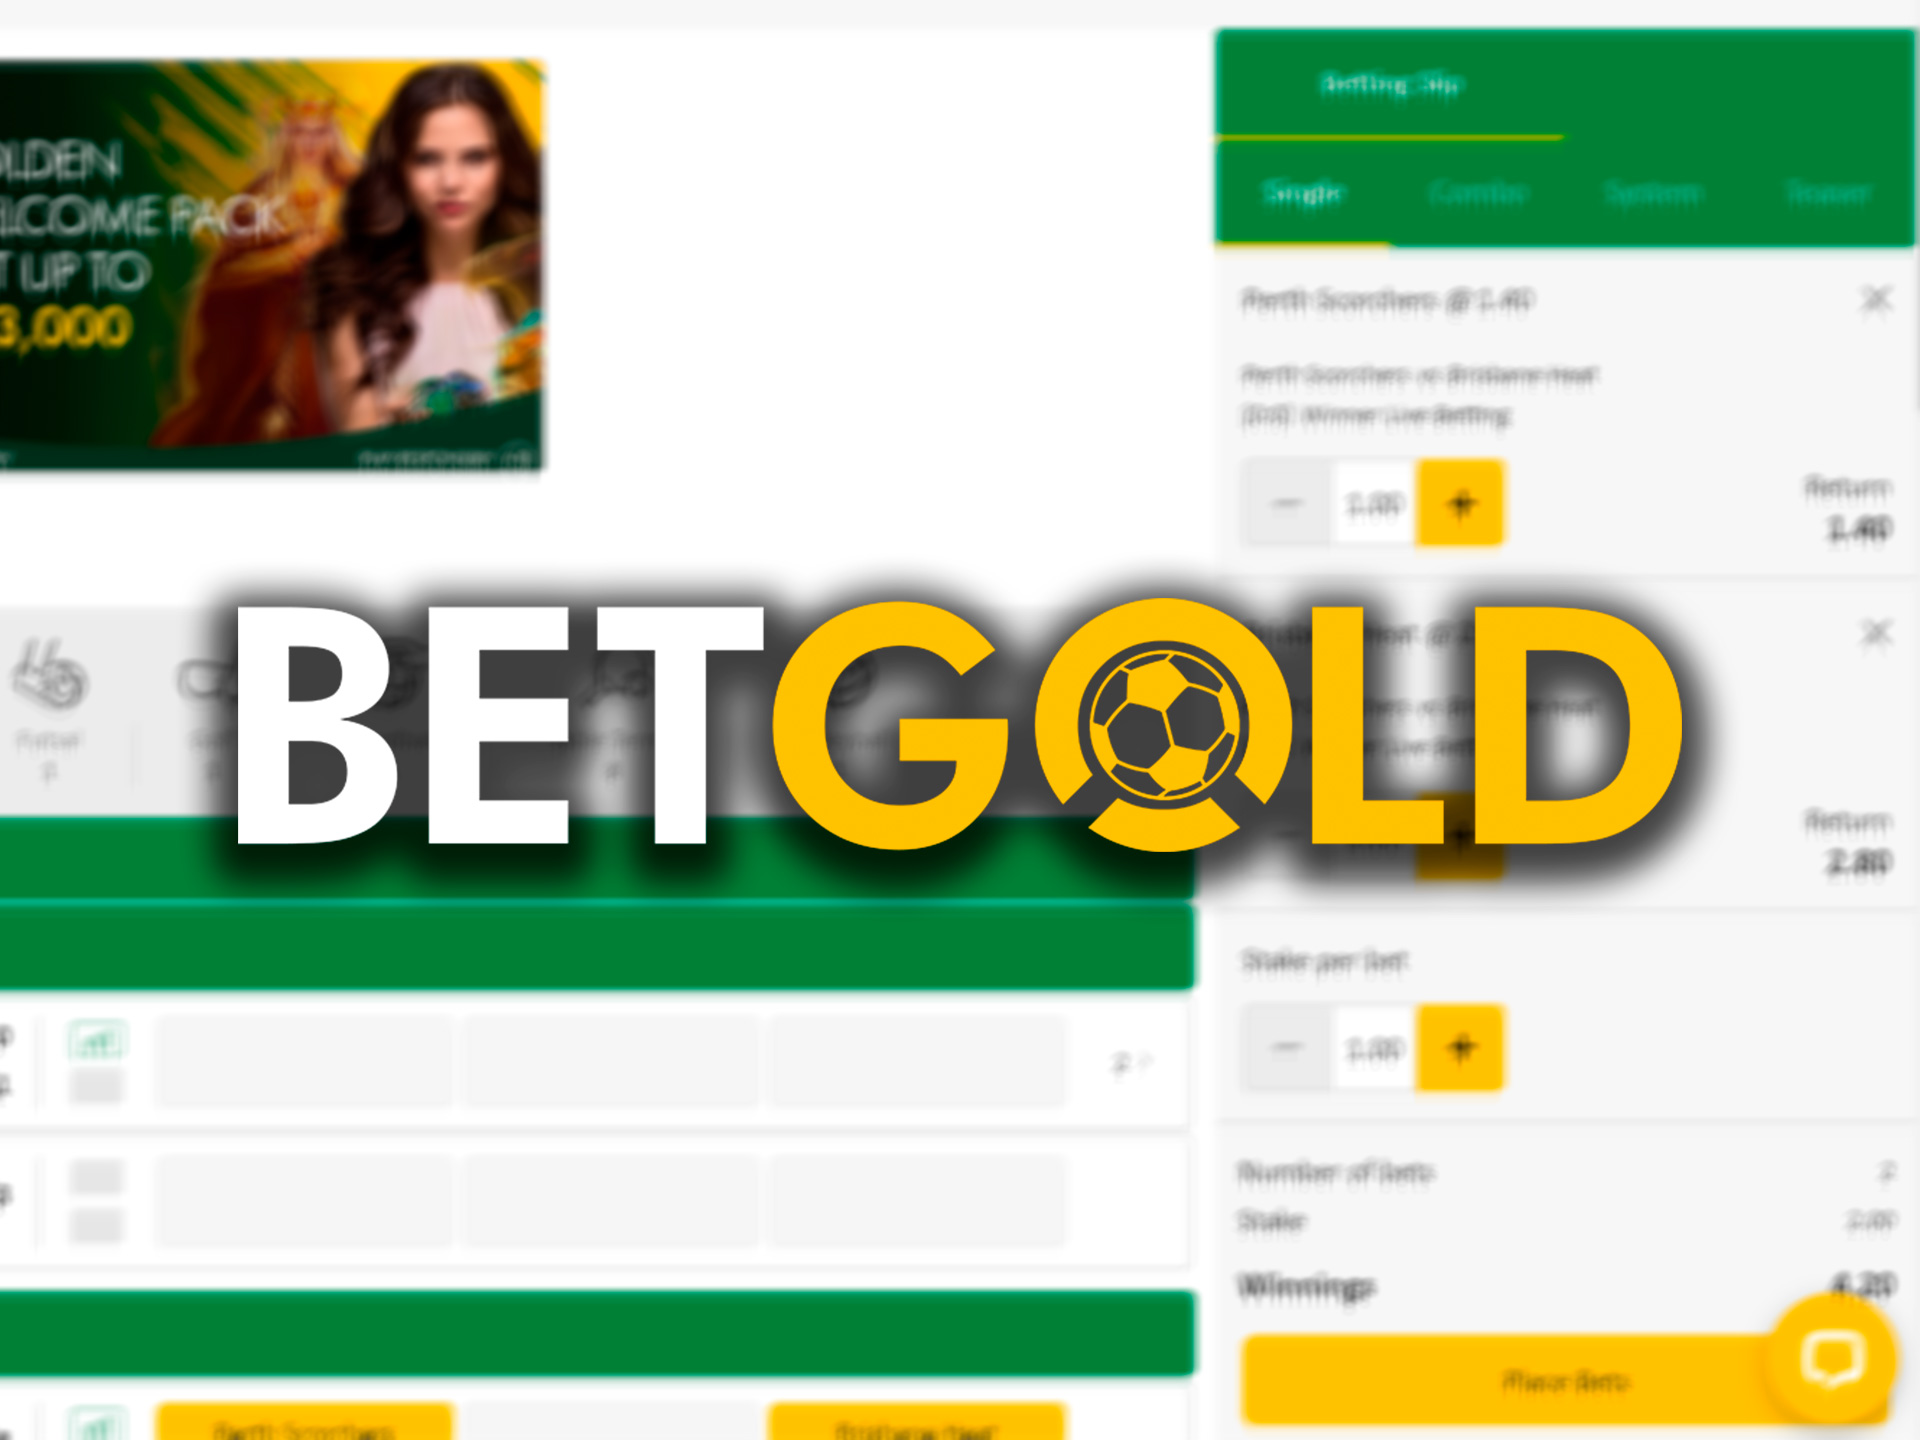 Betgold provides one of the biggest welcome bonuses to bet on IPL events.